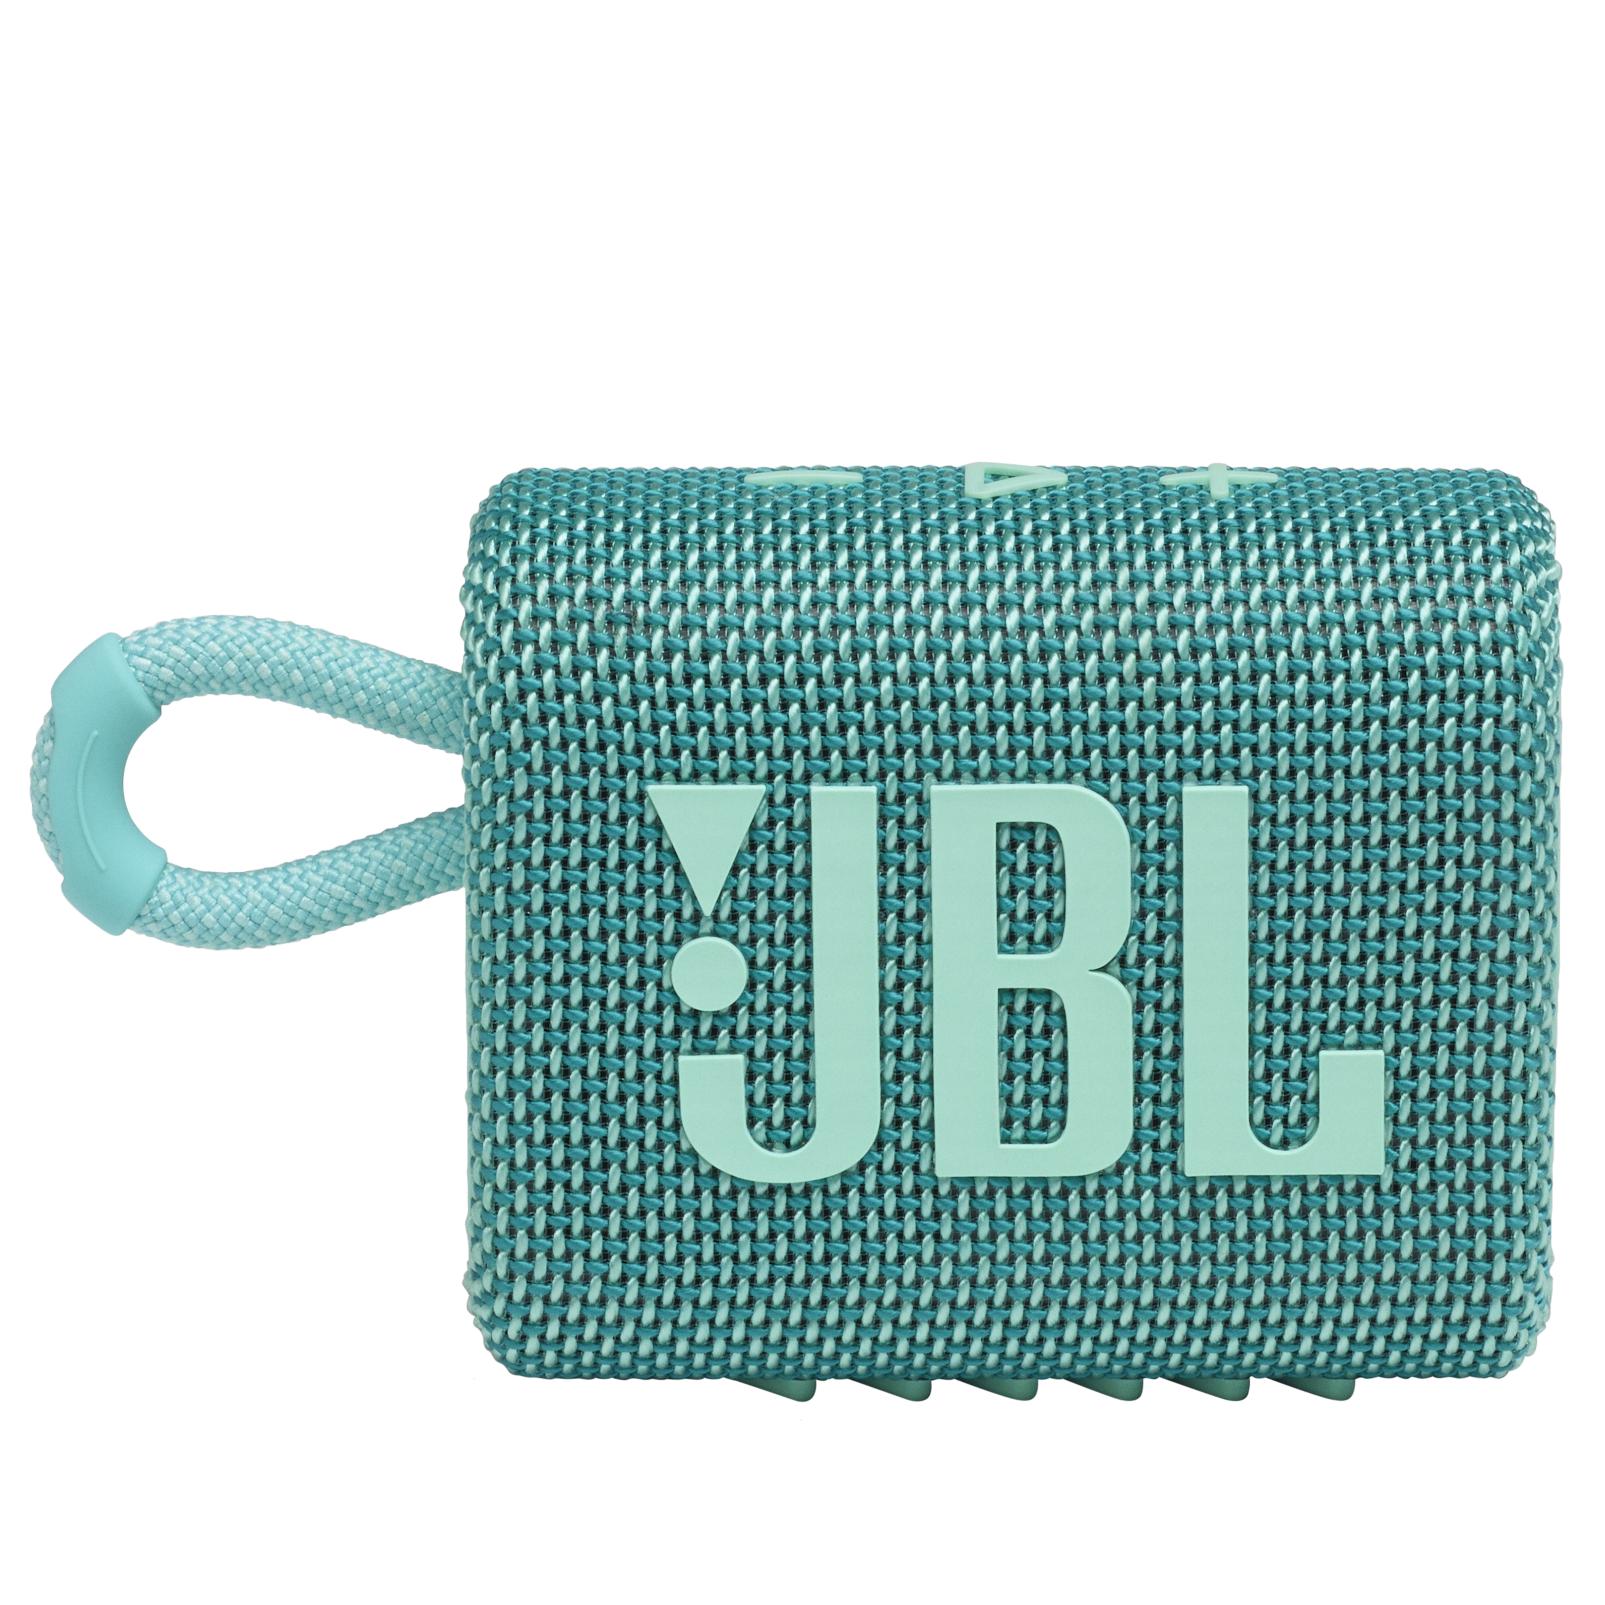 JBL GO 3 - Teal - Portable Waterproof Speaker - Front